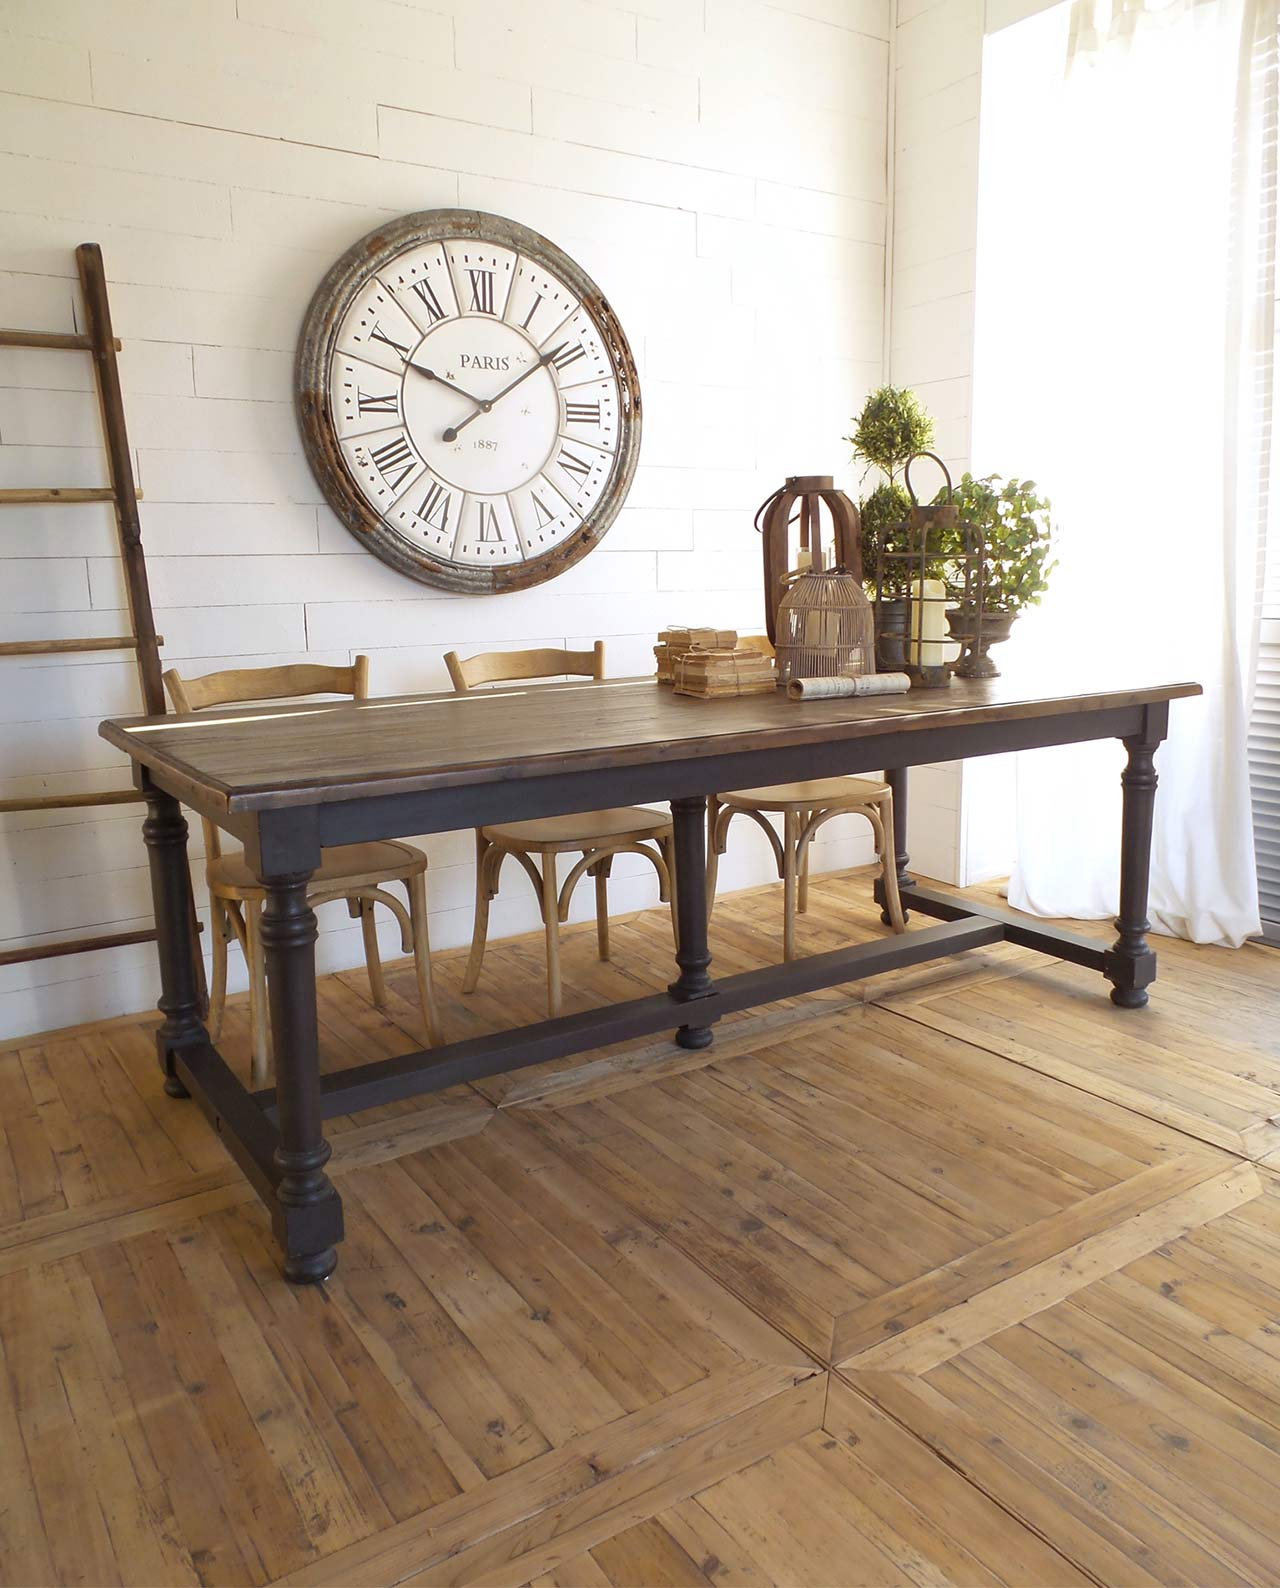 https://mobiliastore.it/wp-content/uploads/2017/12/tavolo-in-legno-di-pino-stile-country.jpg